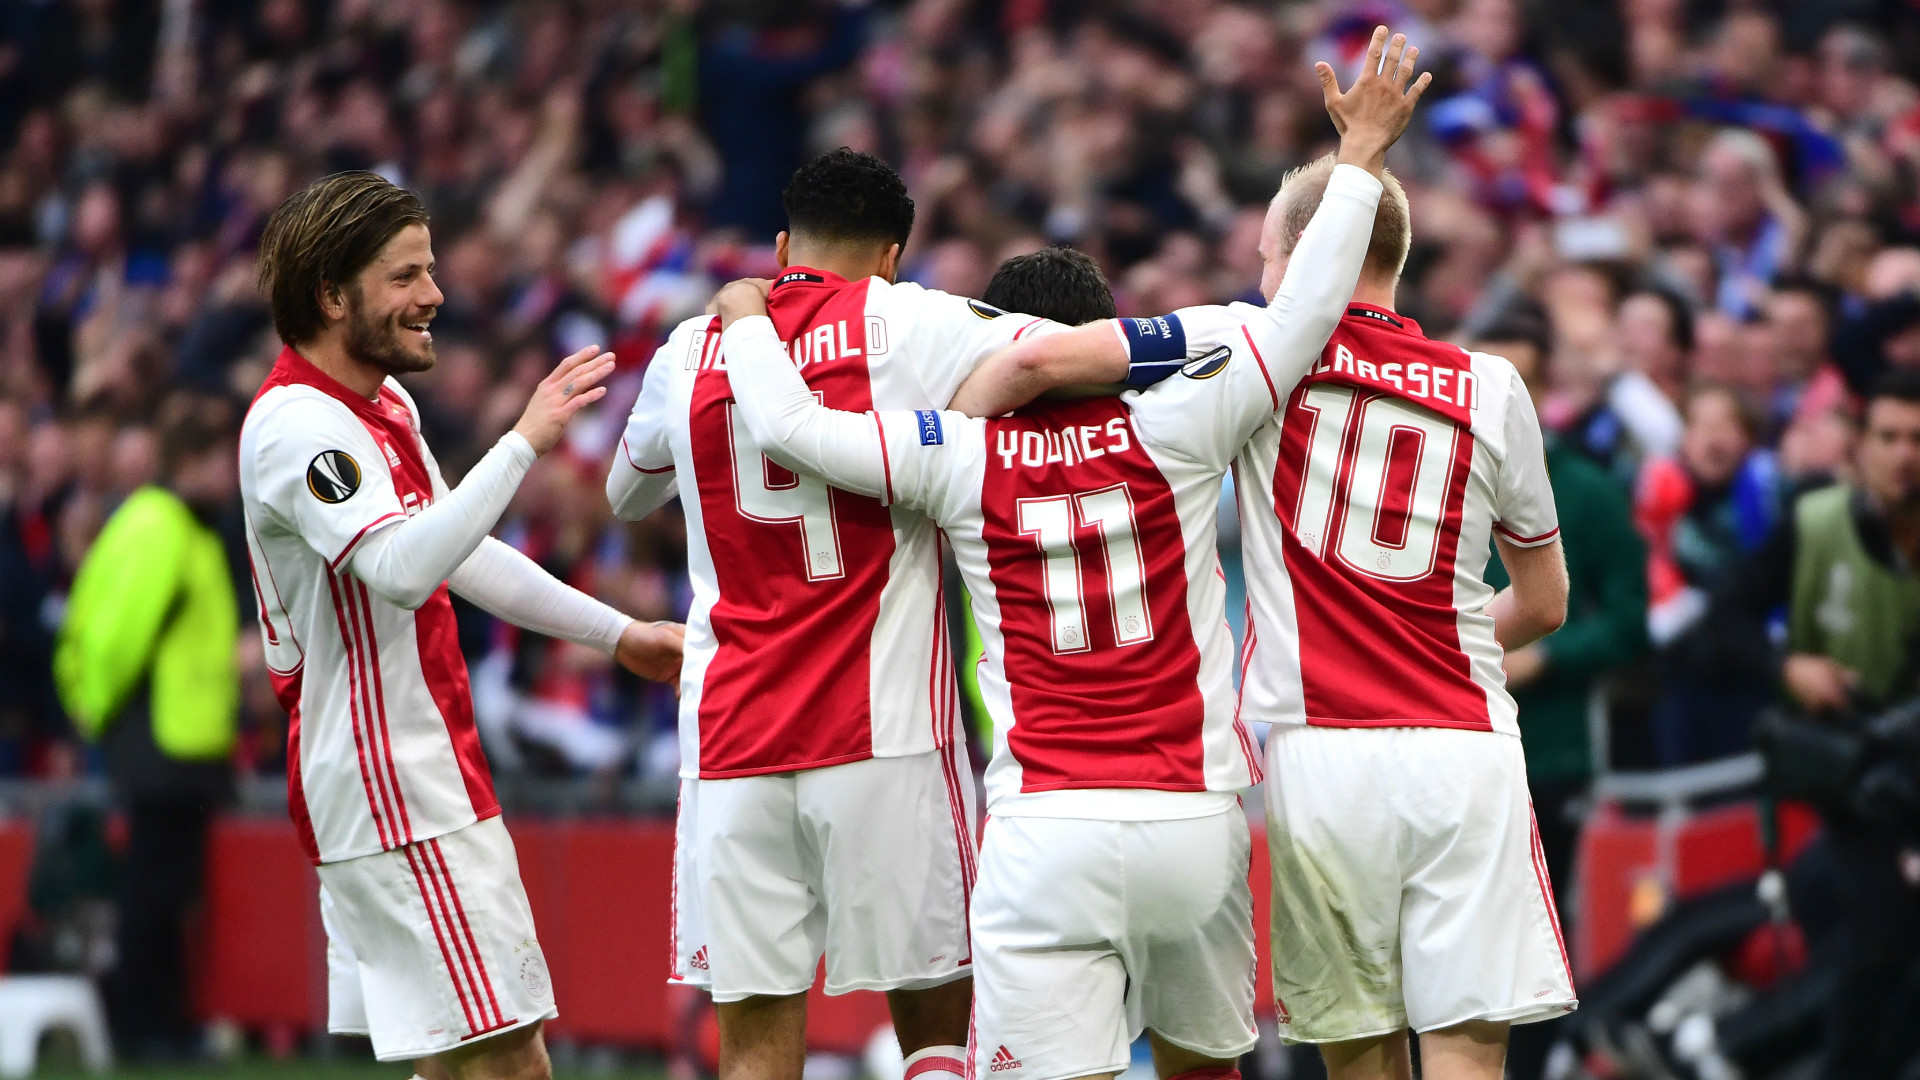 http://images.performgroup.com/di/library/GOAL/df/38/ajax-europa-league_1fvmbaclpi2ds1p8wcsdqhpnq3.jpg